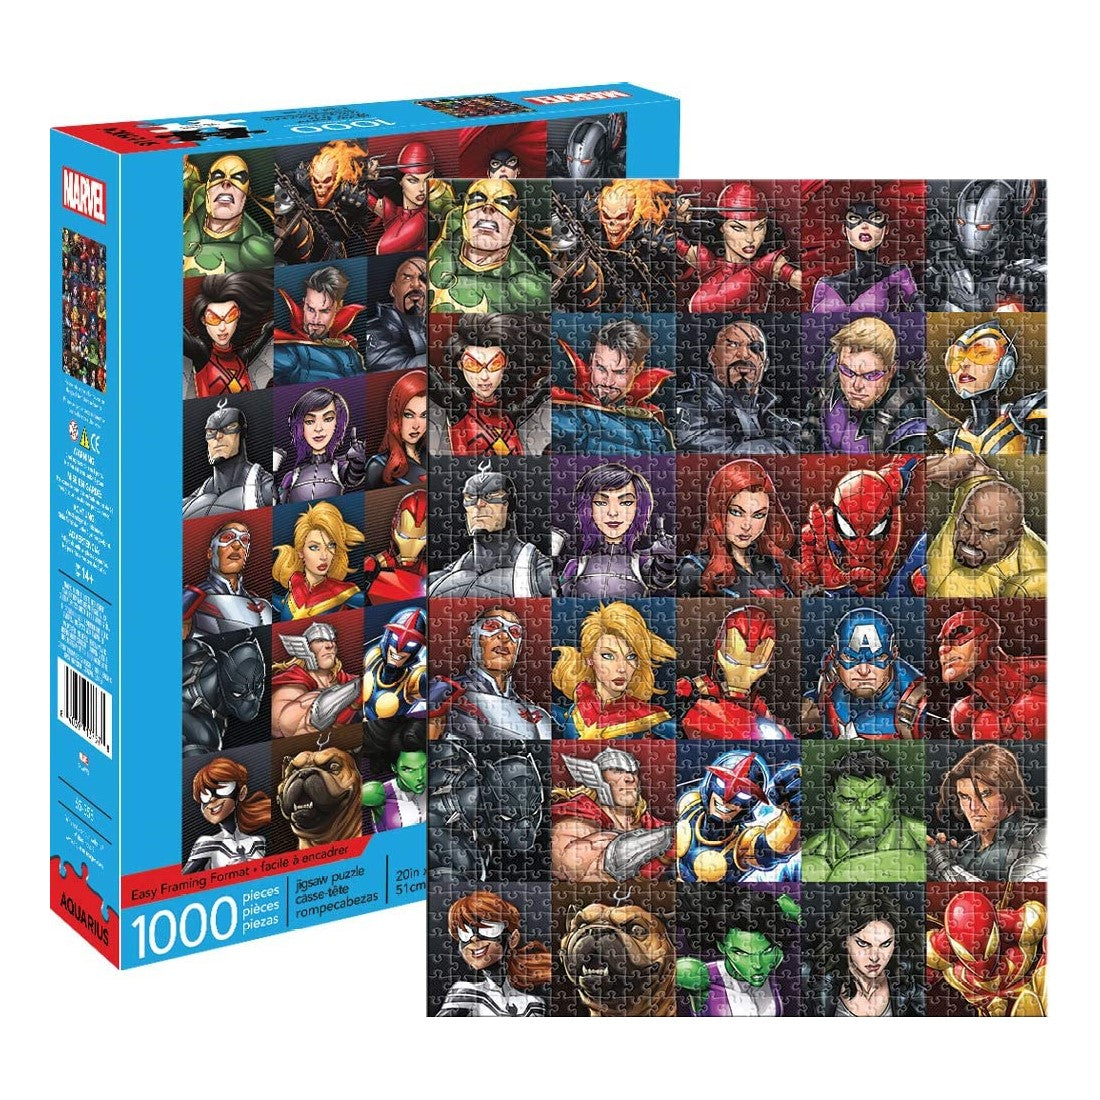 Marvel Heroes Collage Jigsaw Puzzle 1000 Pieces Green Rock Comics